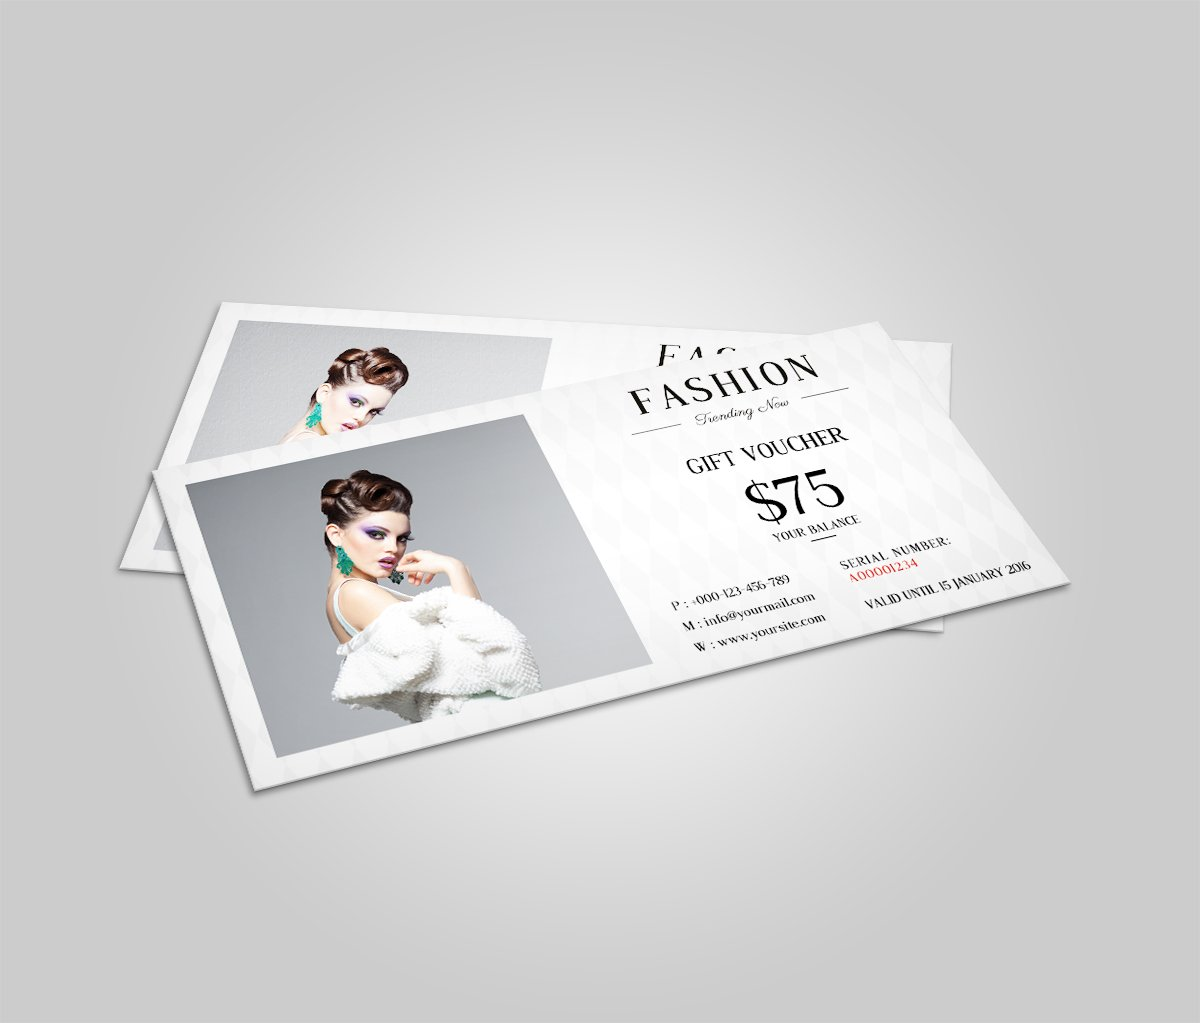 Fashion Gift Voucher Template ~ Card Templates ~ Creative Market